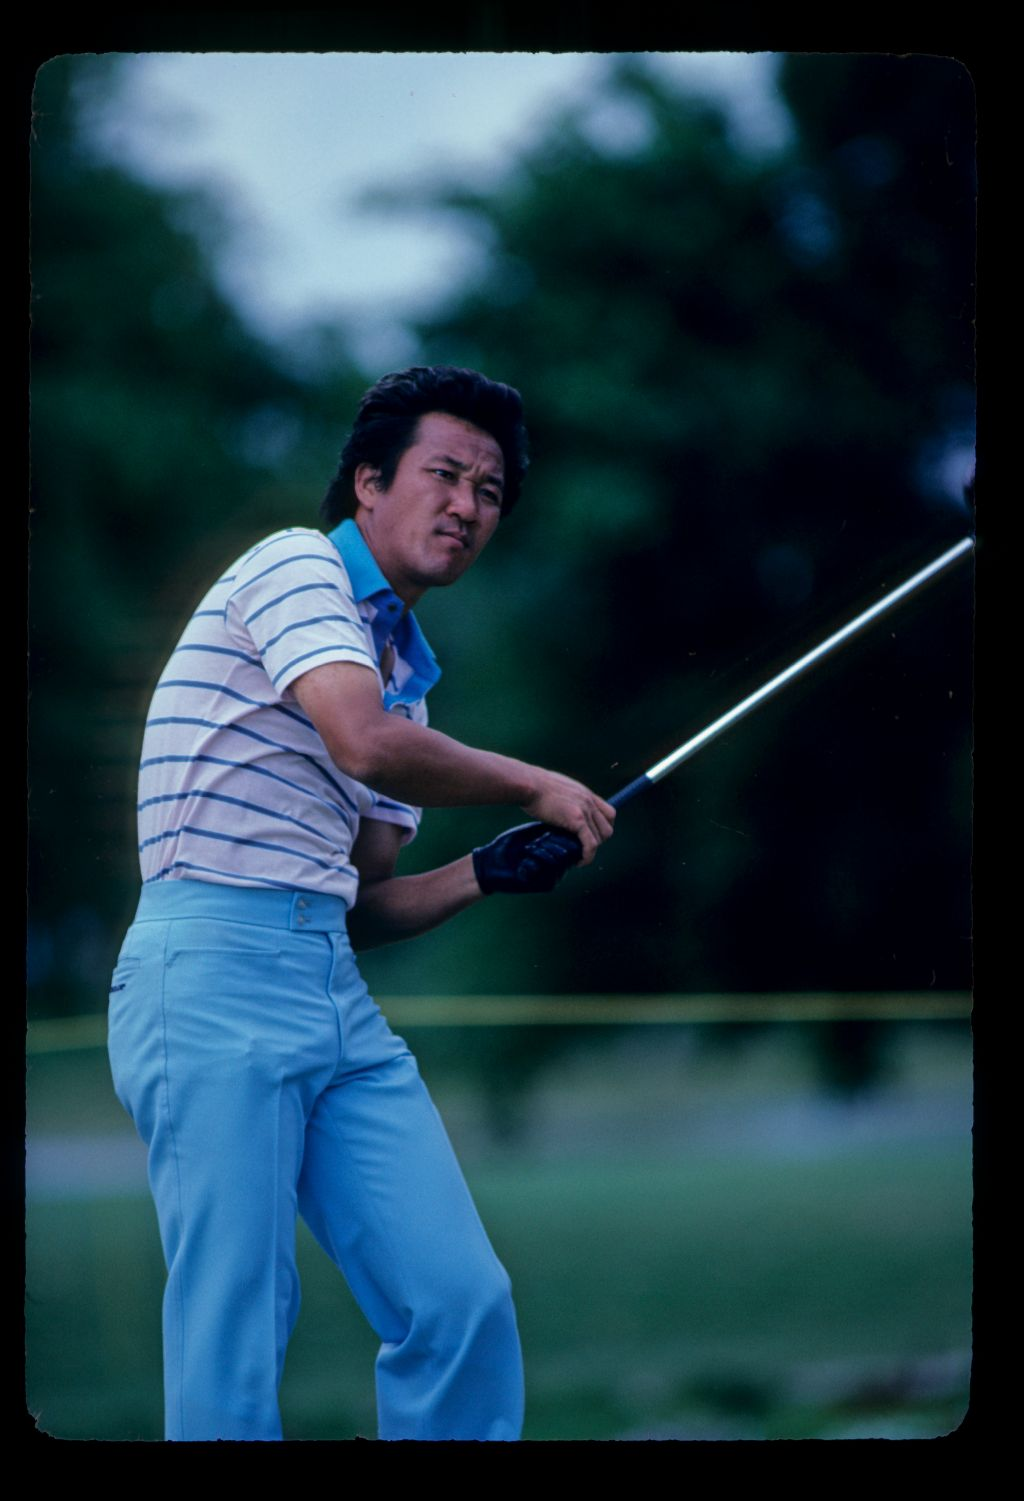 Isao Aoki leaning left after hitting a shot during the 1982 Doral